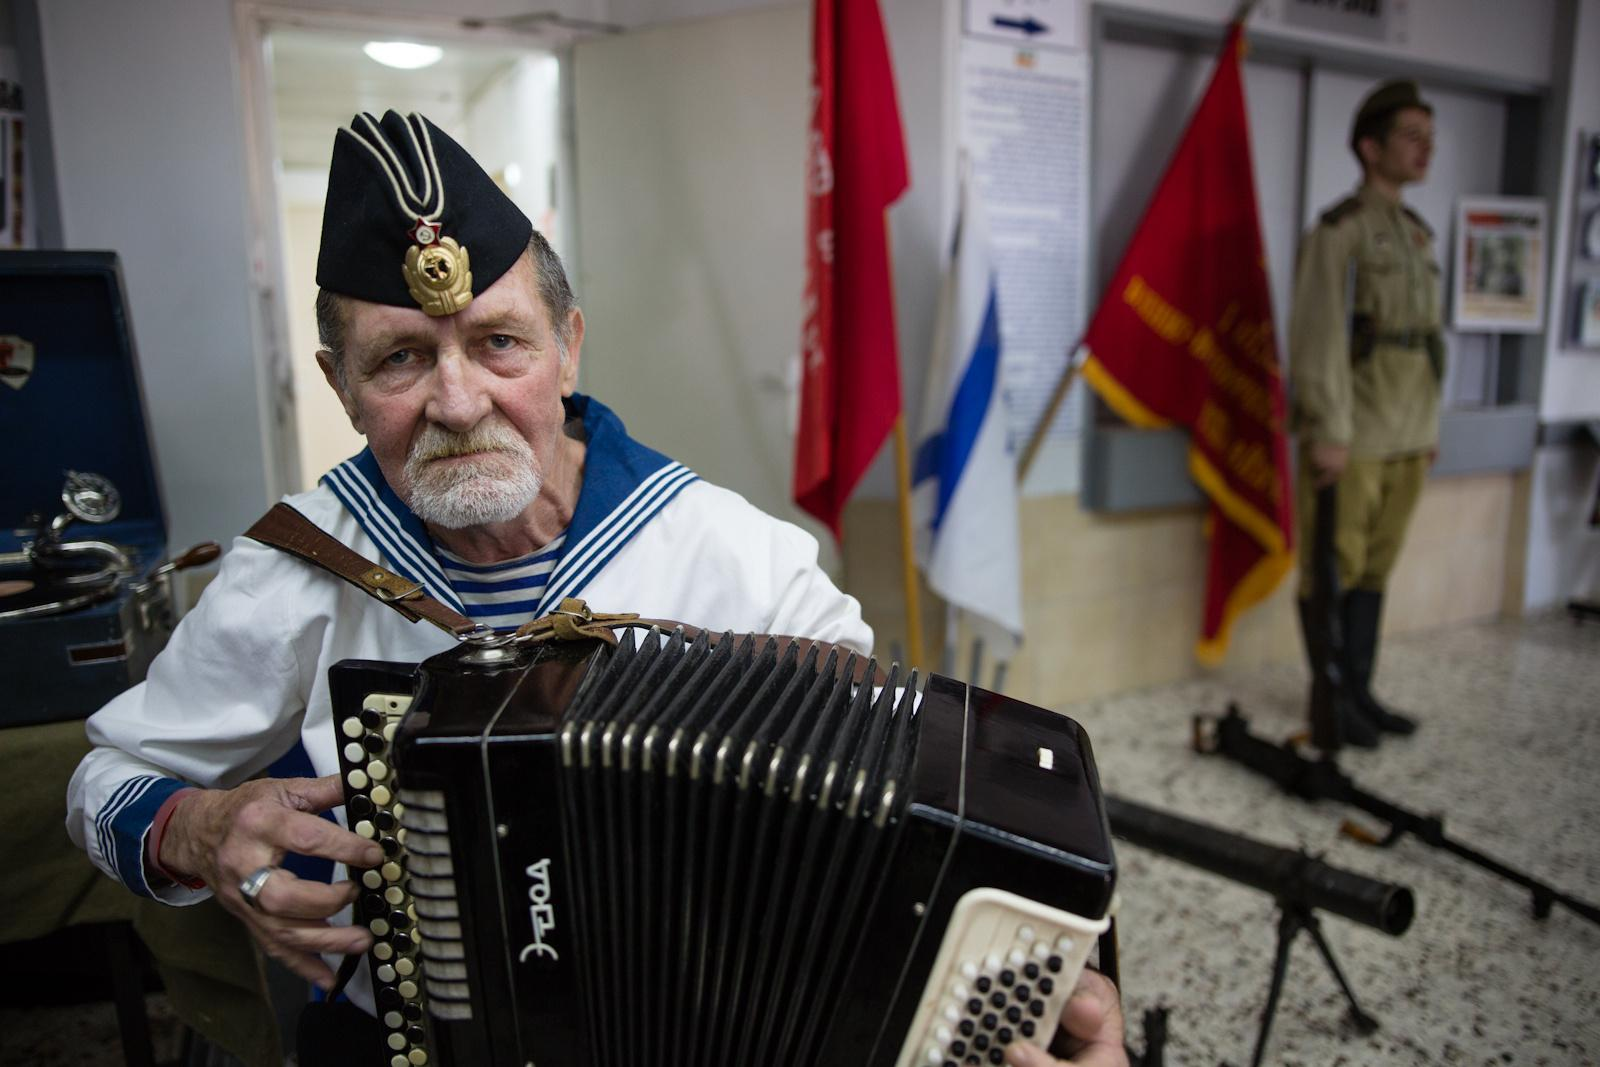 ASHDOD, ISRAEL - MAY 07, 2016: A man plays the accordion during an event in remembrance of the upcoming Victory Day, marking the anniversary of the Allied victory over Nazi Germany, in the southern city of Ashdod, May 7, 2016.